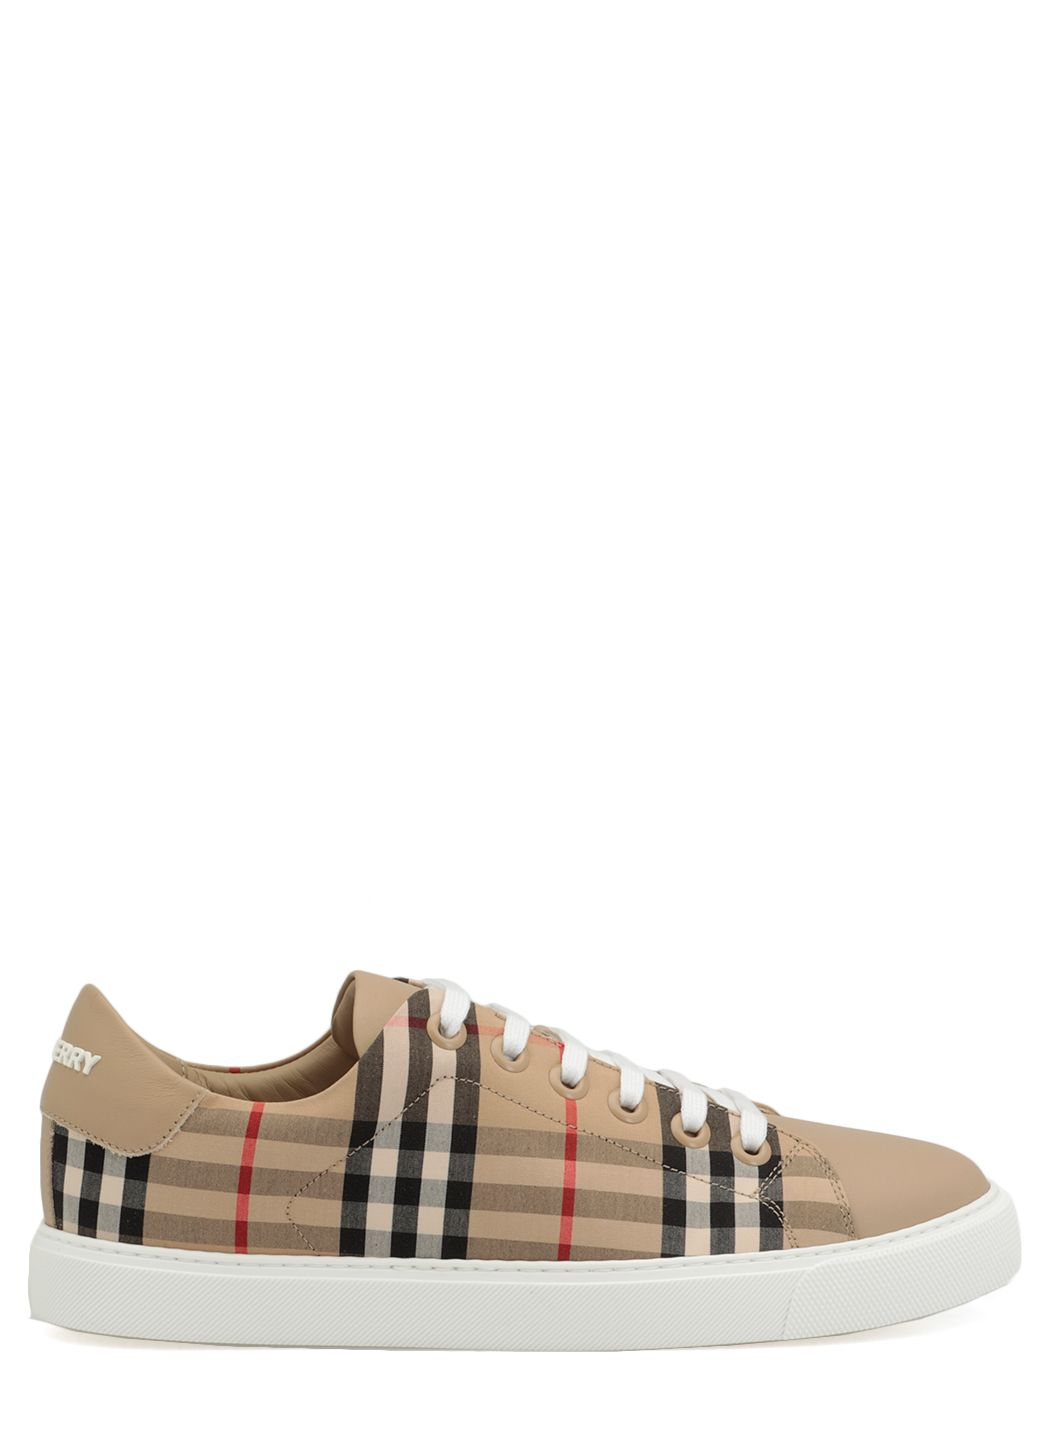 Sneaker in Vintage Check